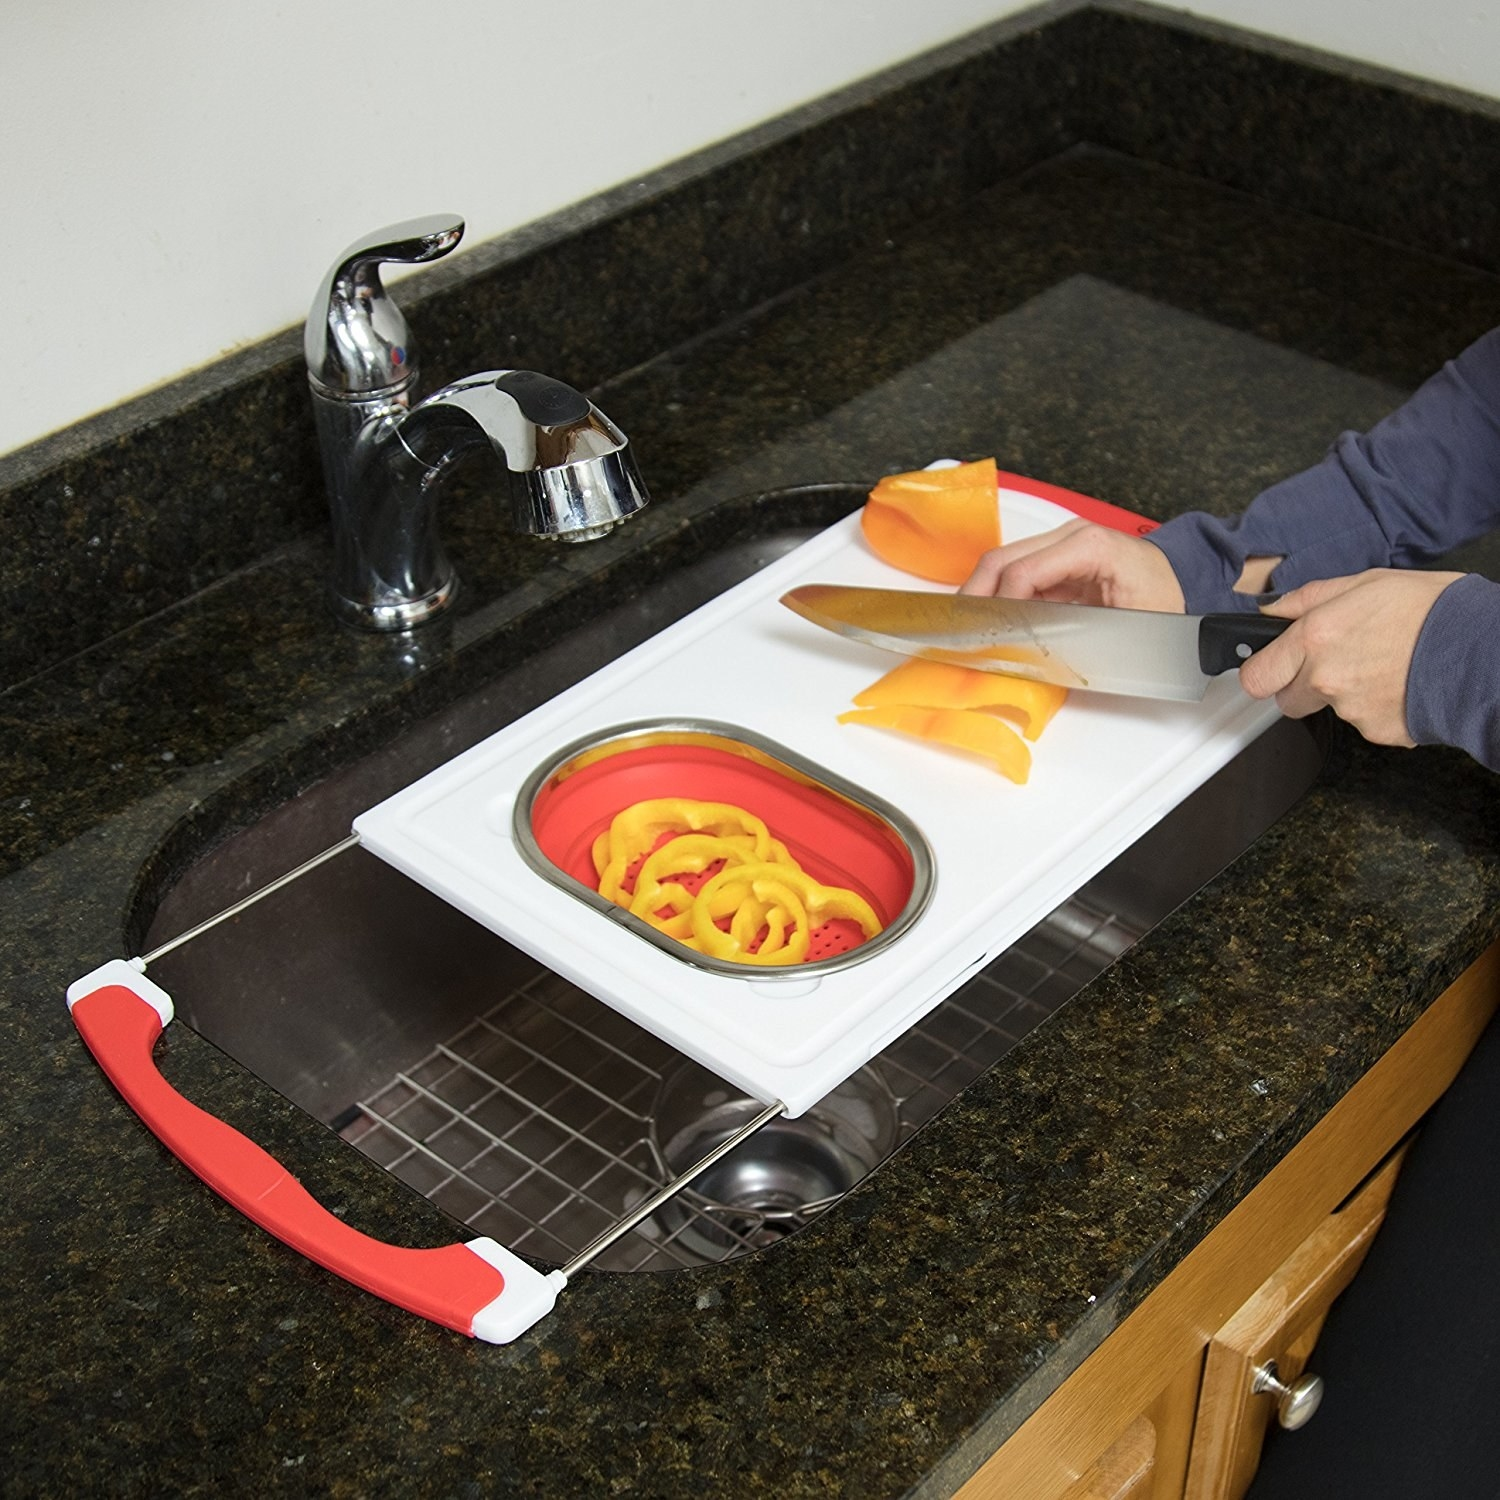 The cutting board with peppers being chopped on it and rinsed in the silicone strainer